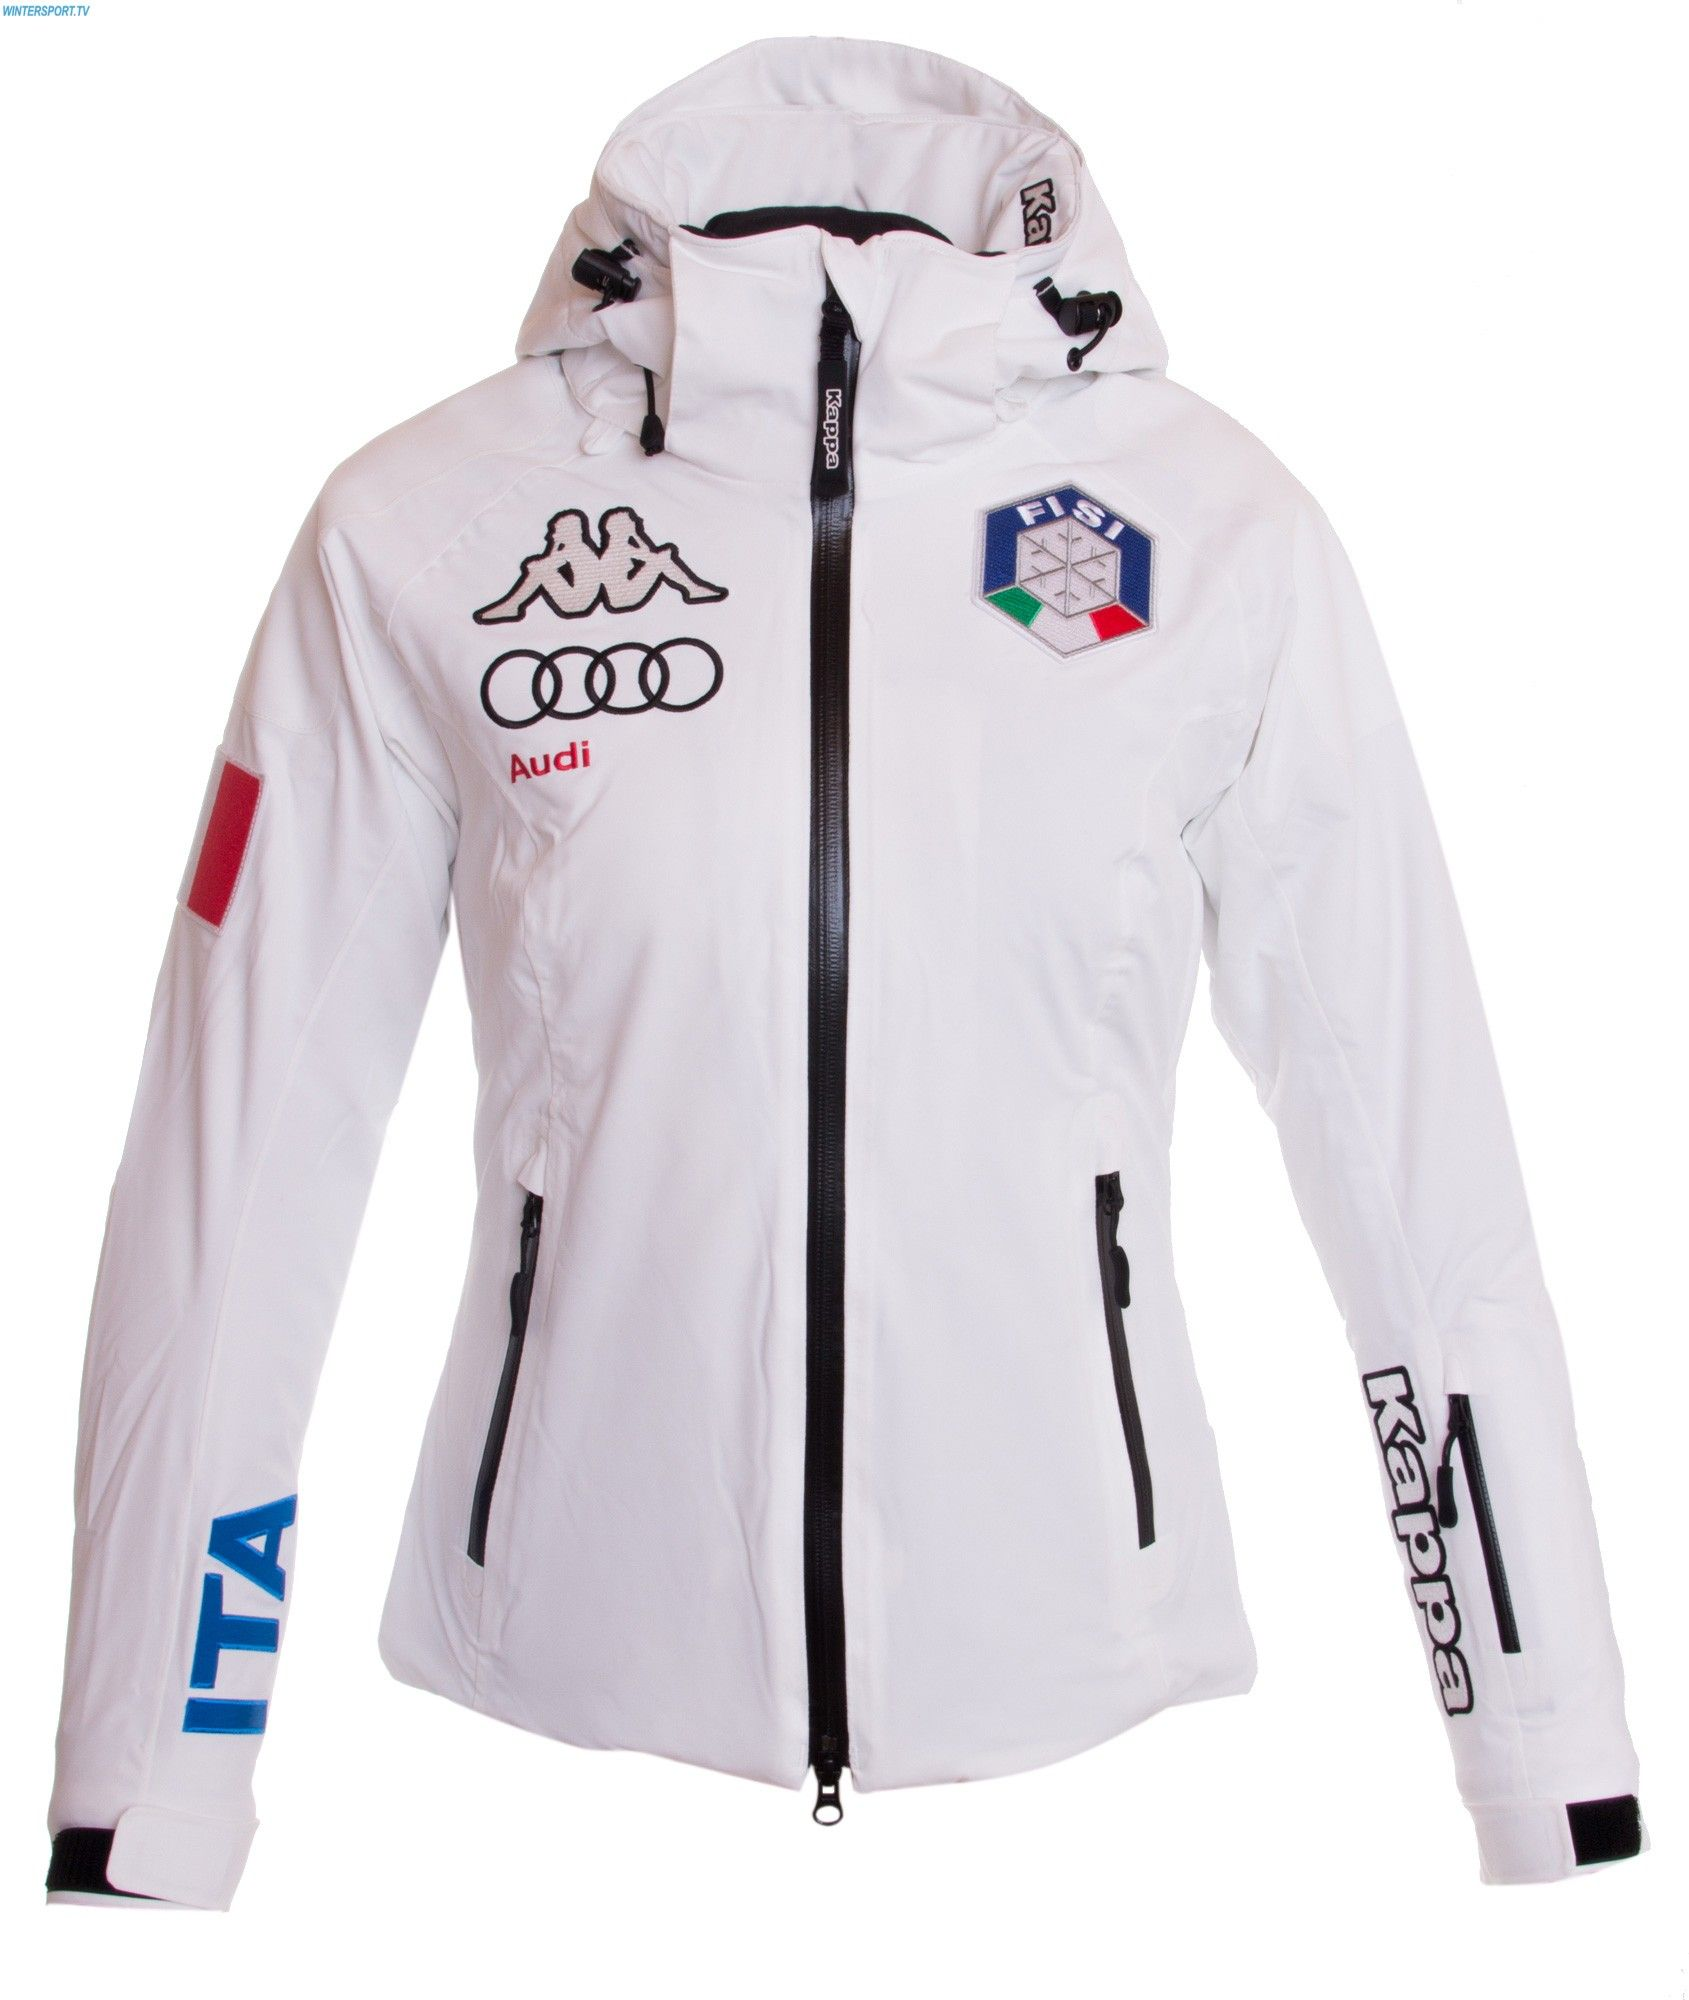 Kappa Women Italian Team FISI Jacket – White | Jackets, Team